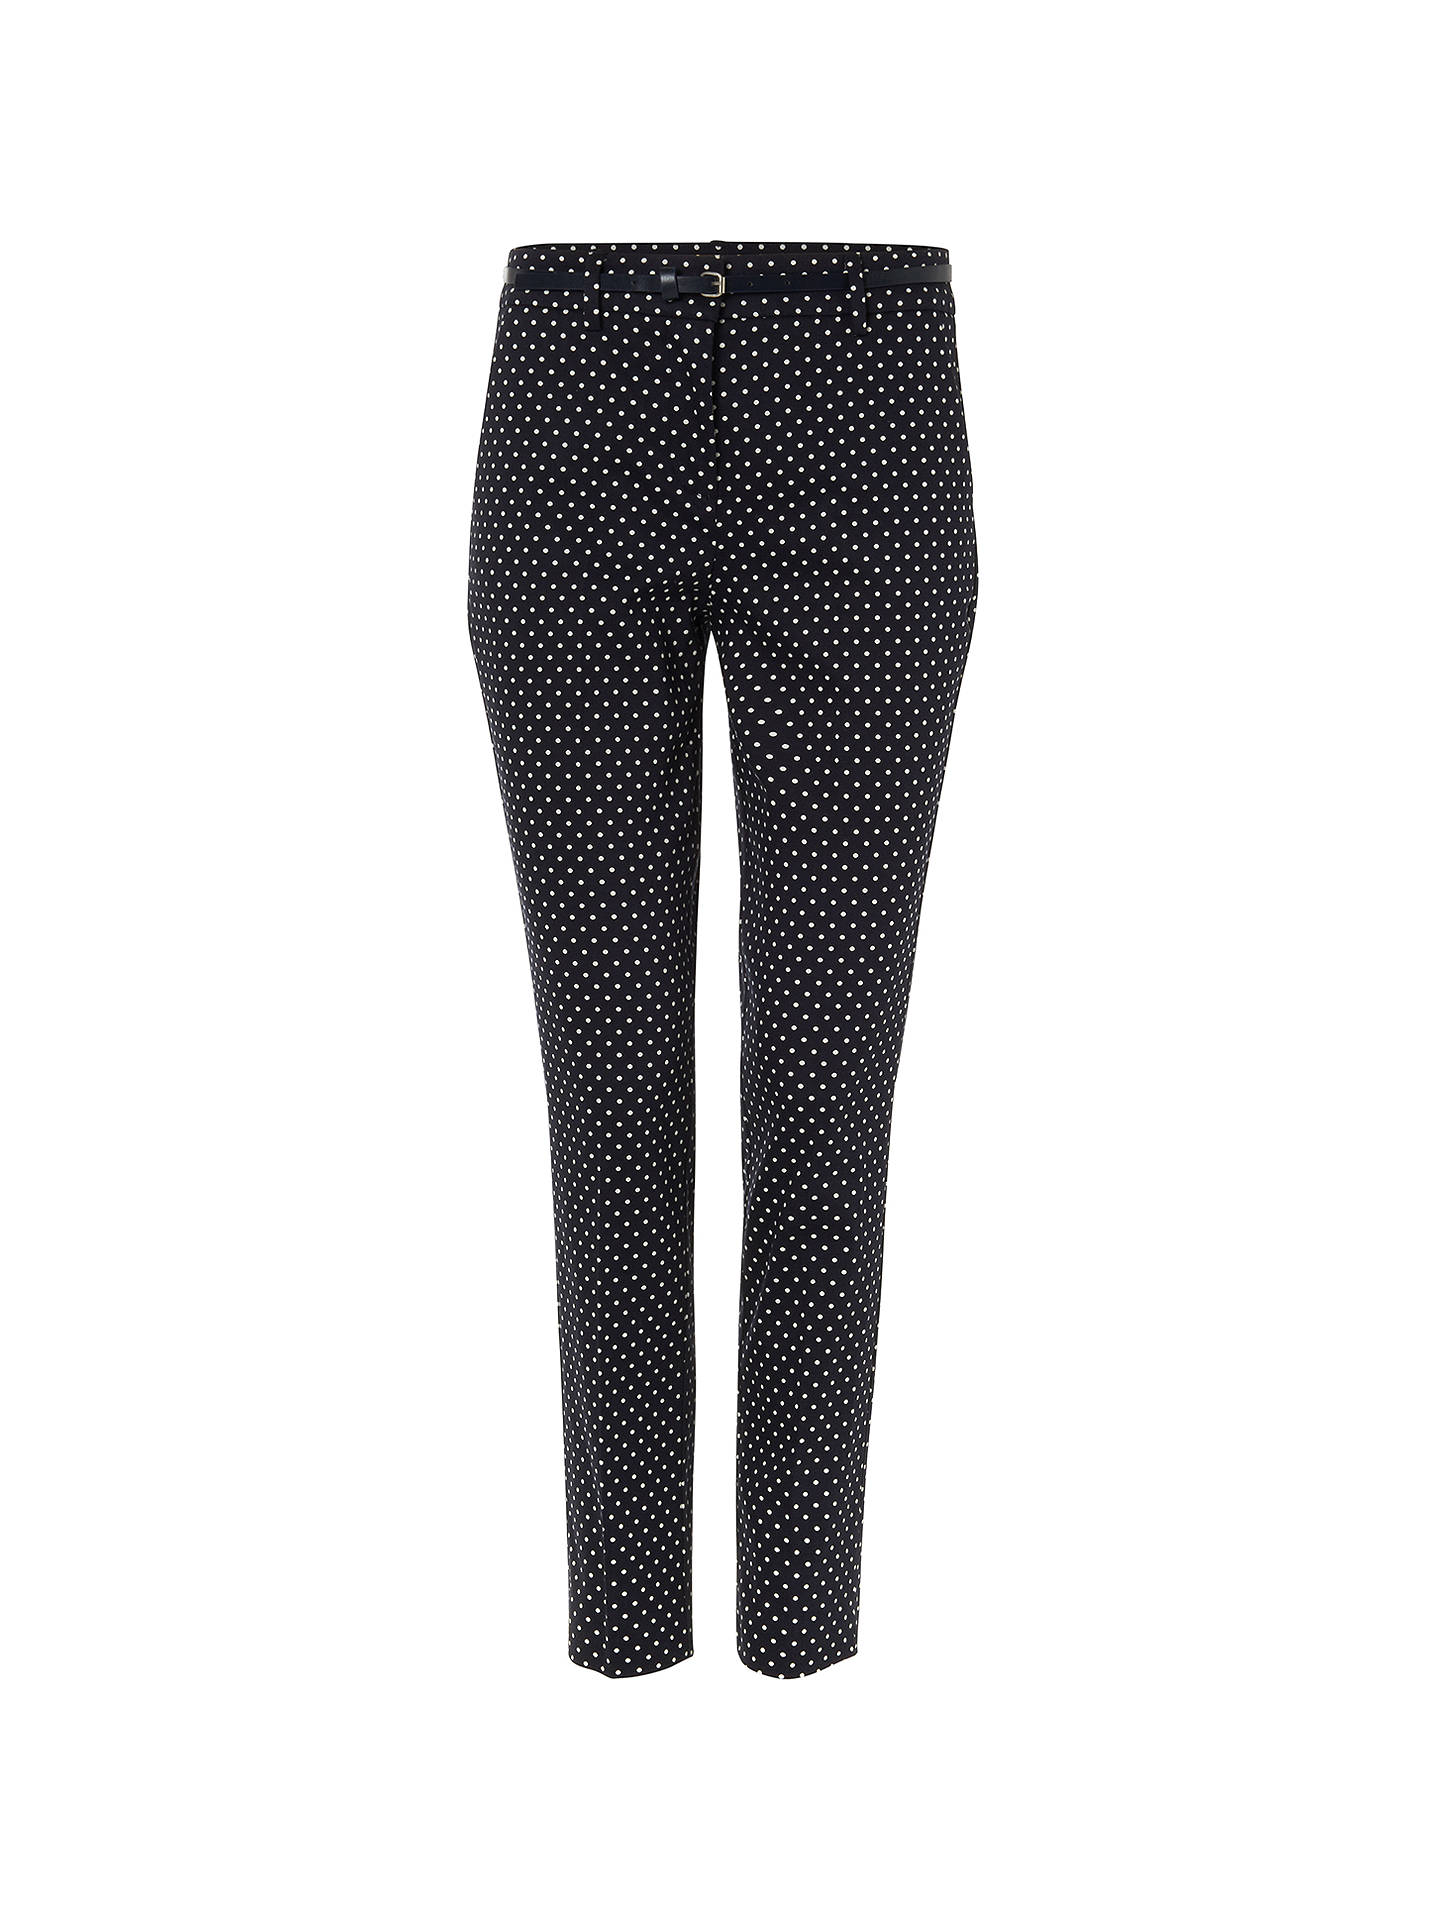 BuyPhase Eight Libby Spot Print Trousers, Navy/Ivory, 8 Online at johnlewis.com